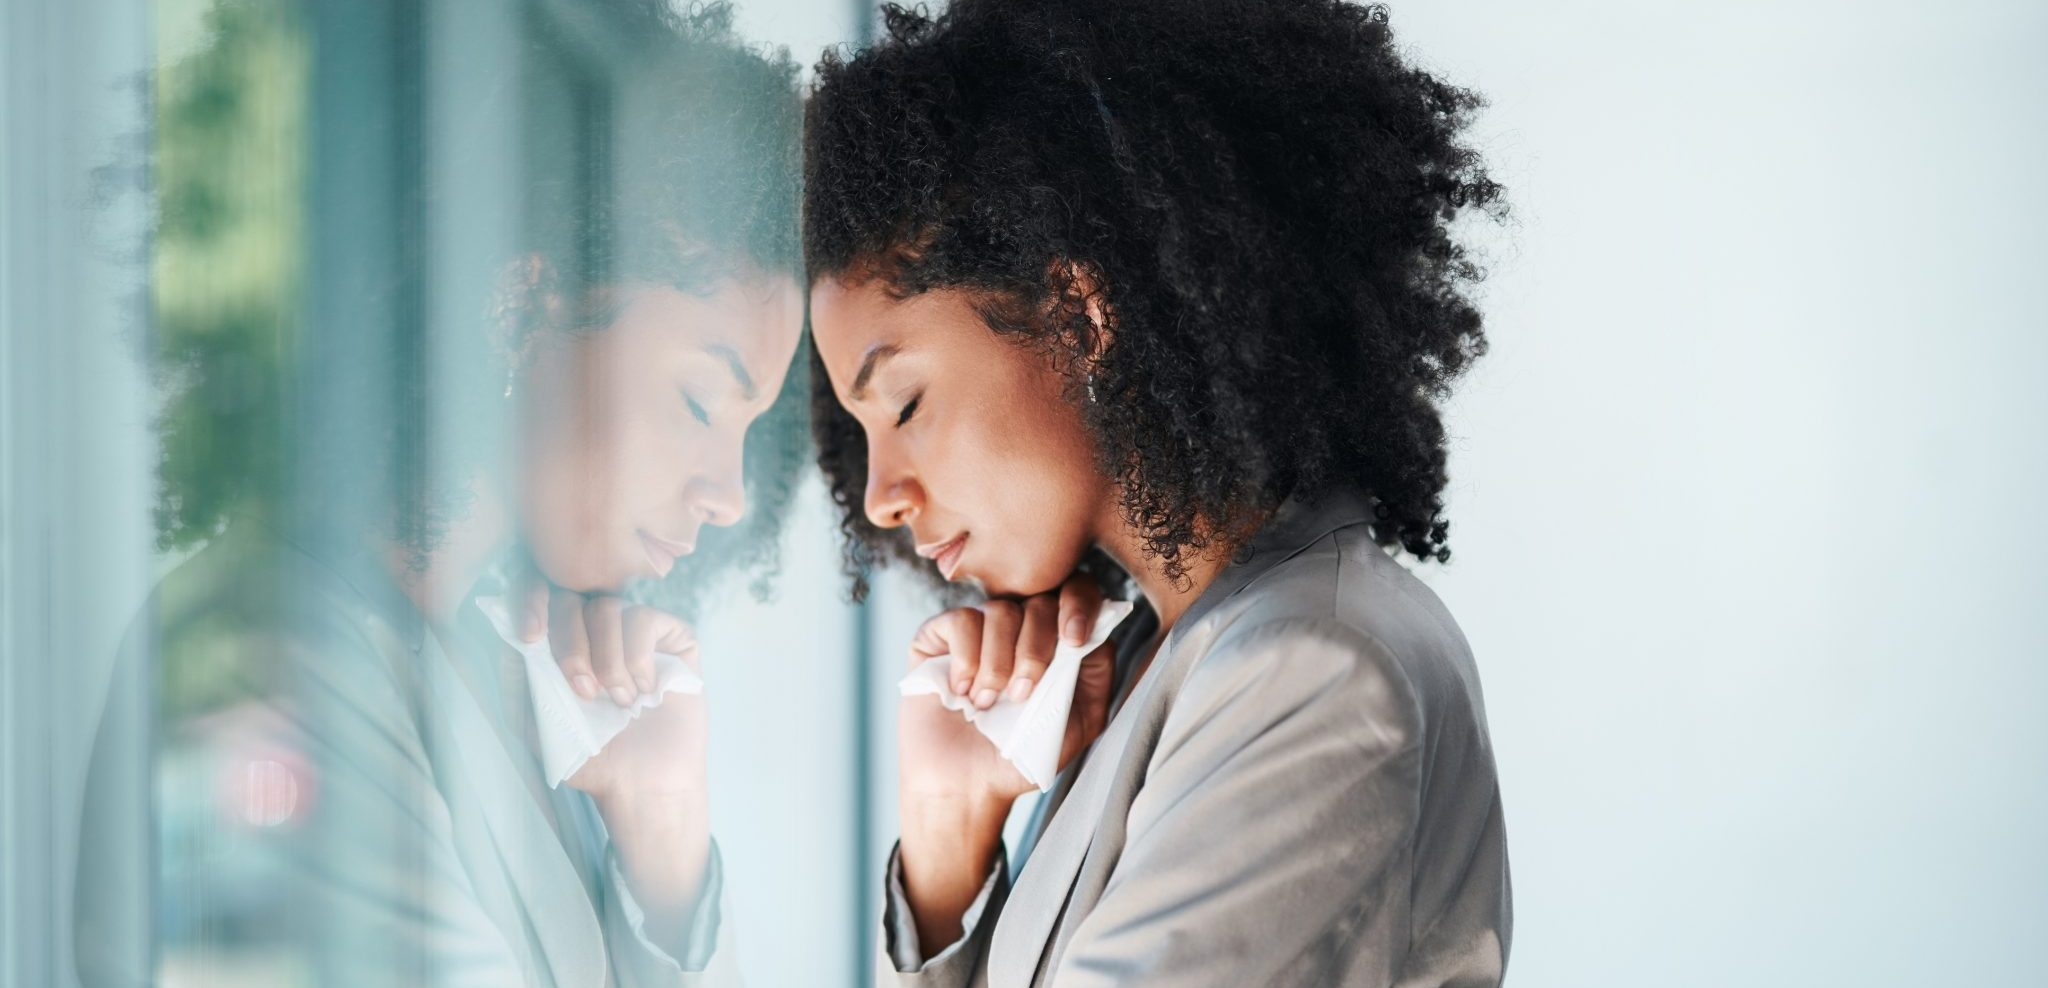 5 Tips for When you Have High Functioning Depression